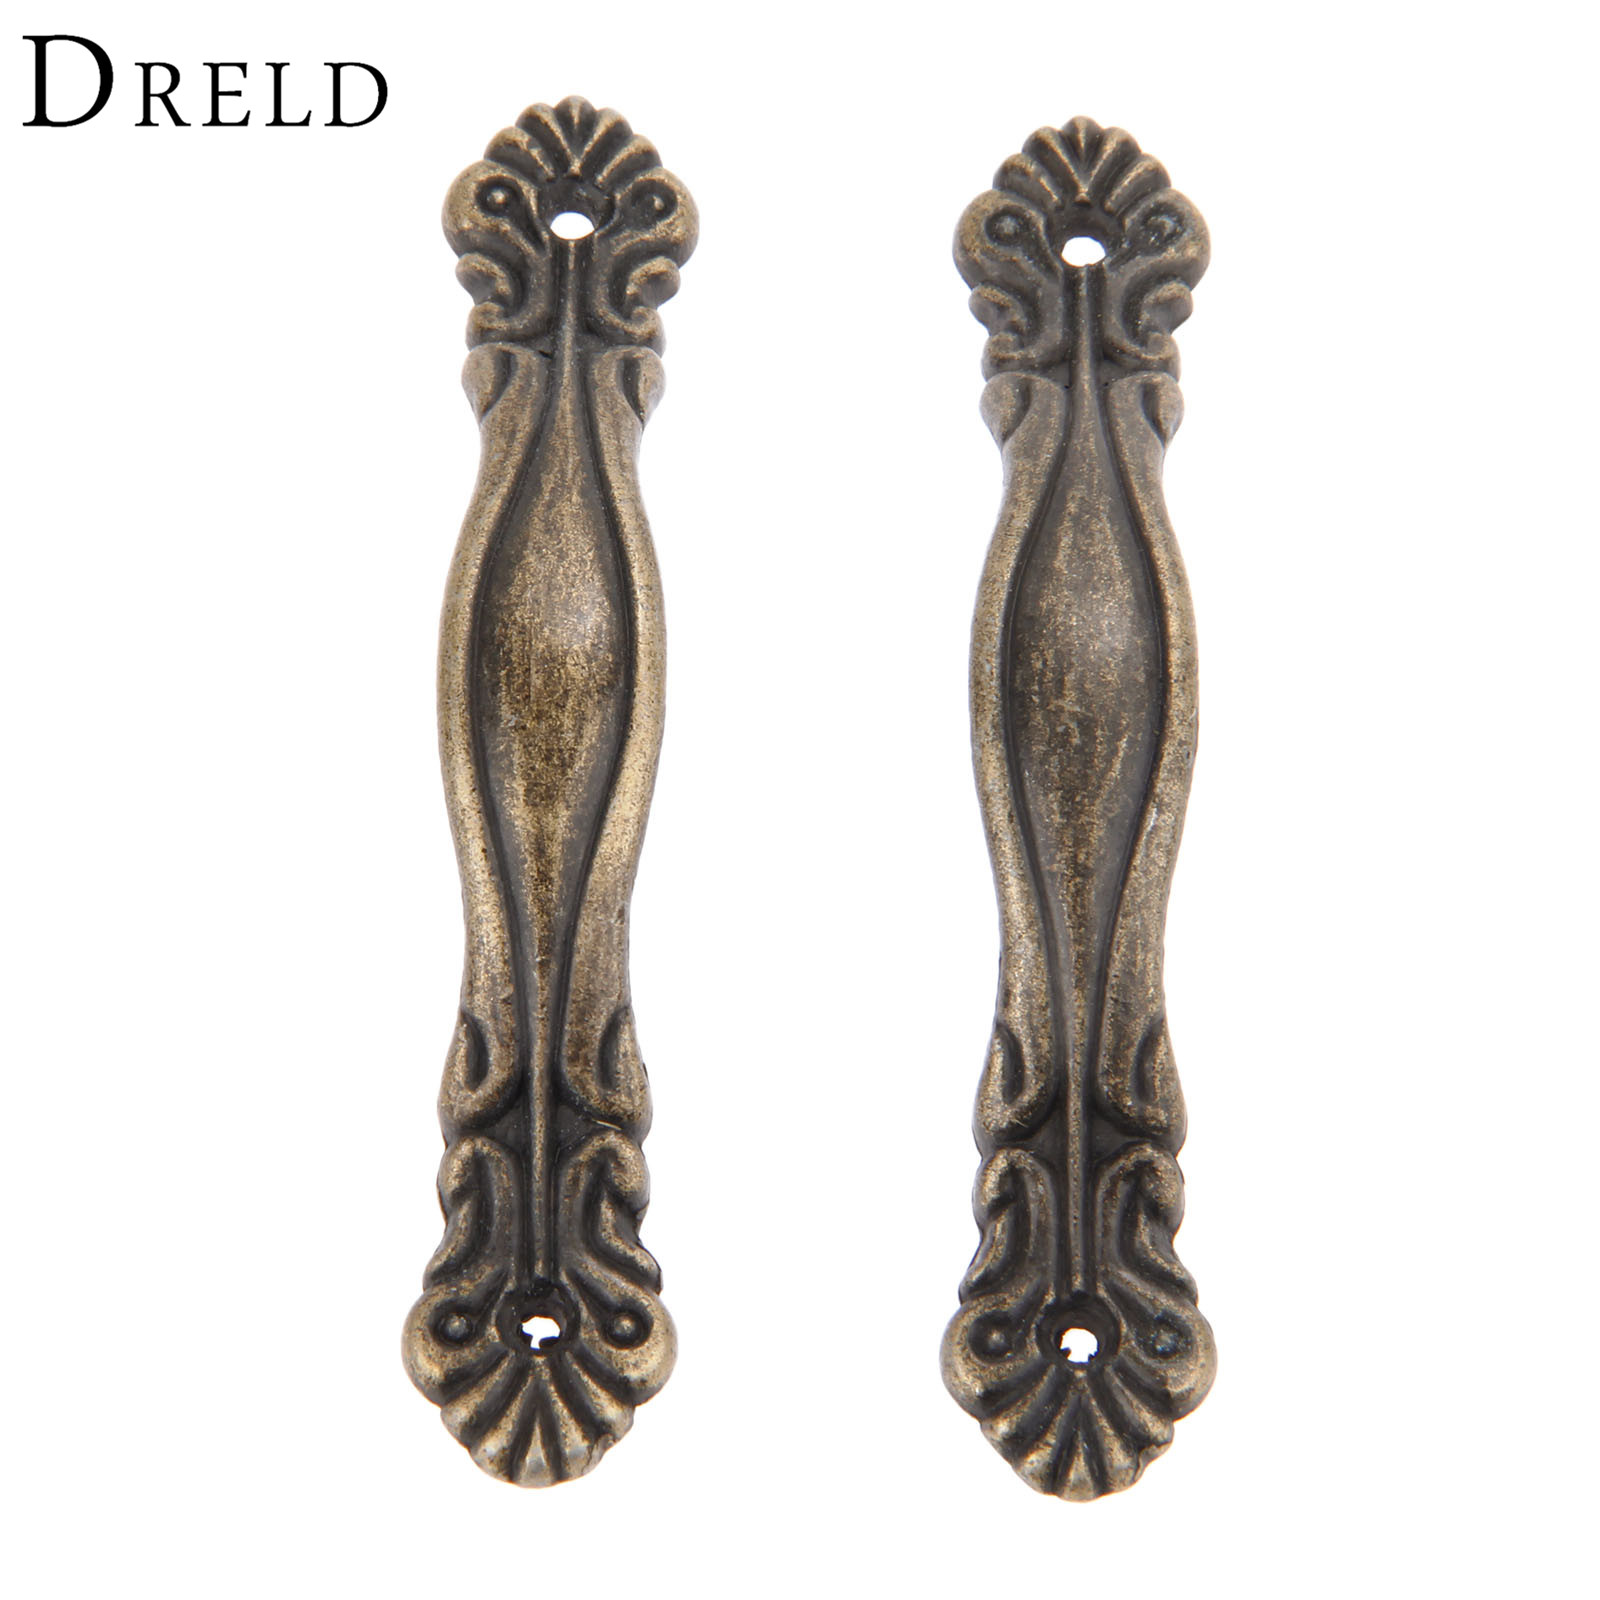 DRELD 2Pcs Antique Brass Furniture Handles Cabinet Knobs and Handles Kitchen Cupboard Pull Handles Furniture Fittings 85*15mm antique hardware furniture handle cabinet knobs and handles retro kitchen knobs drawer cupboard pull handles furniture fittings